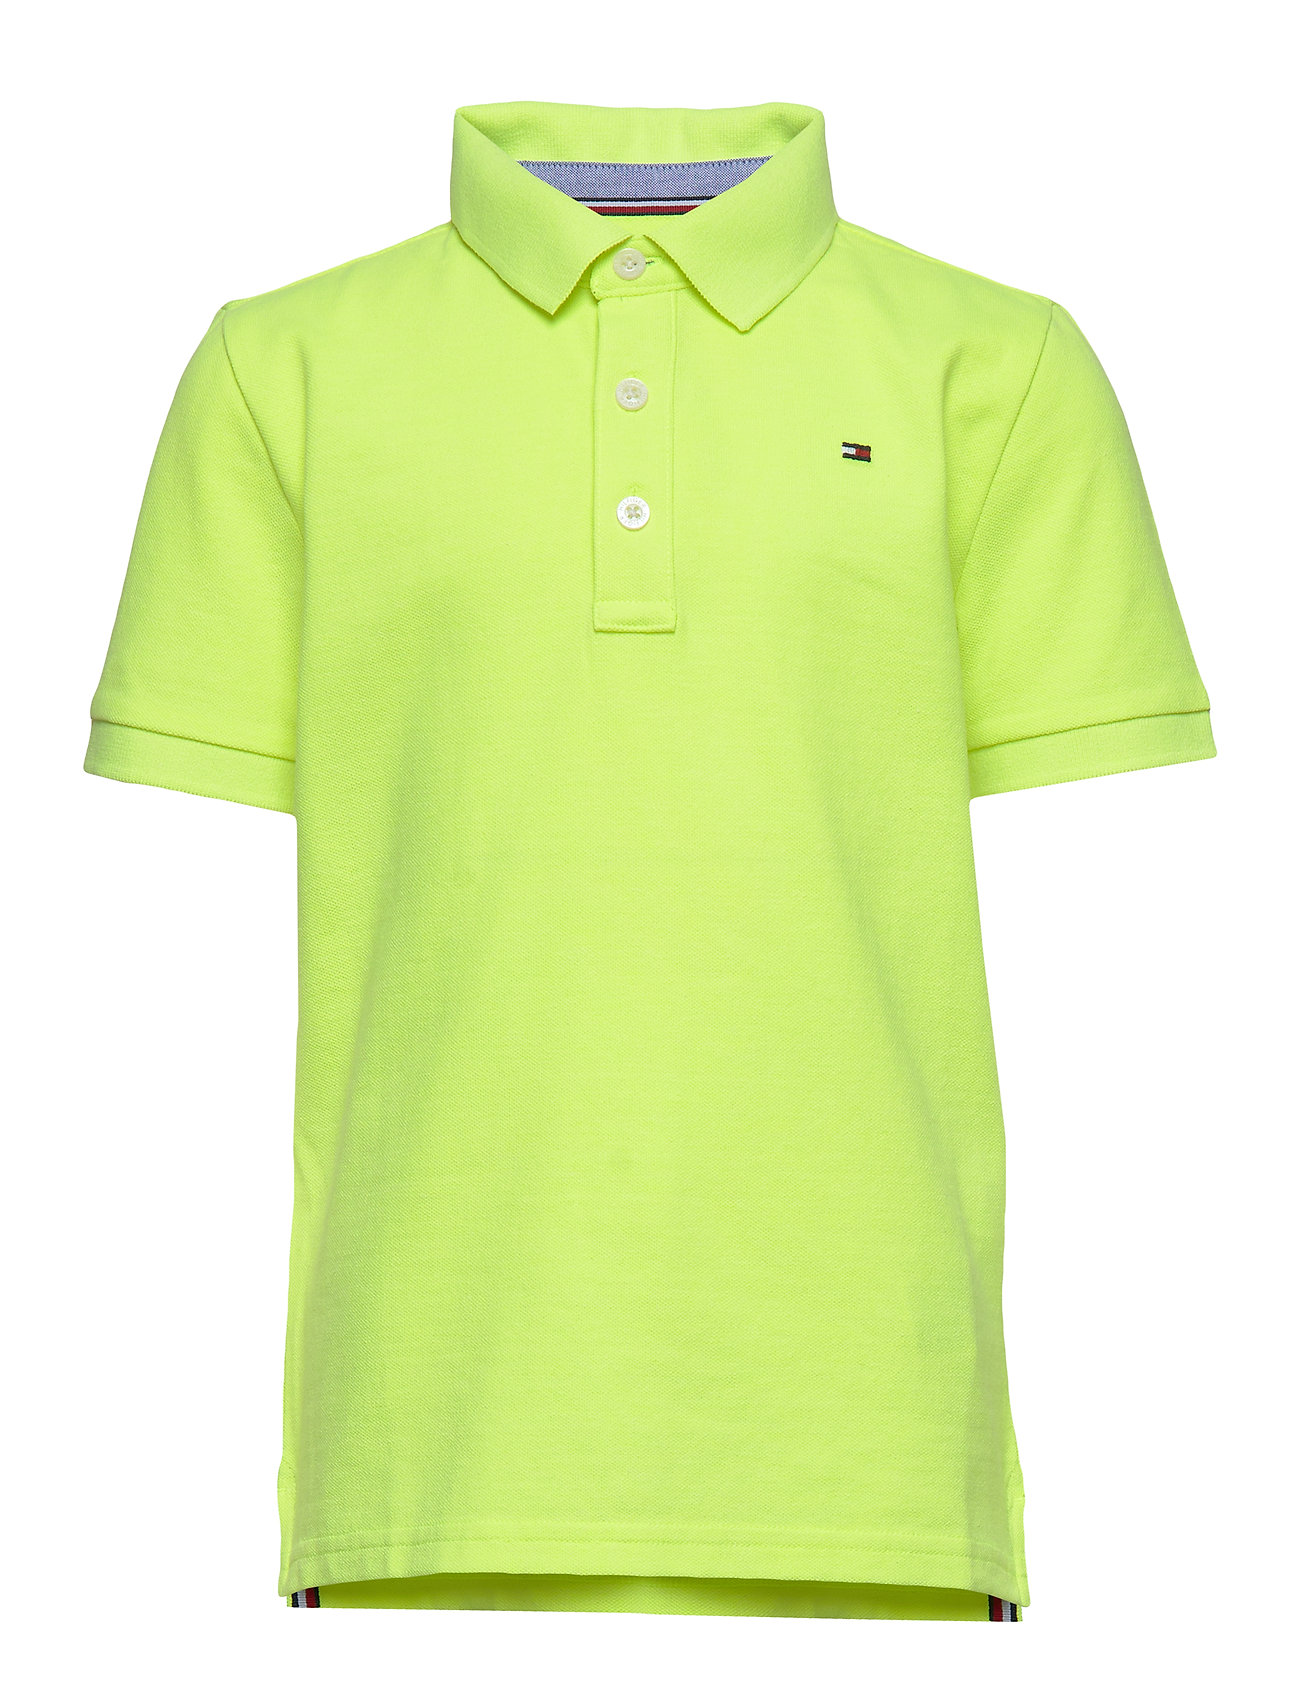 Tommy Hilfiger ESSENTIAL TOMMY REG POLO S/S - SAFETY YELLOW 13-0630